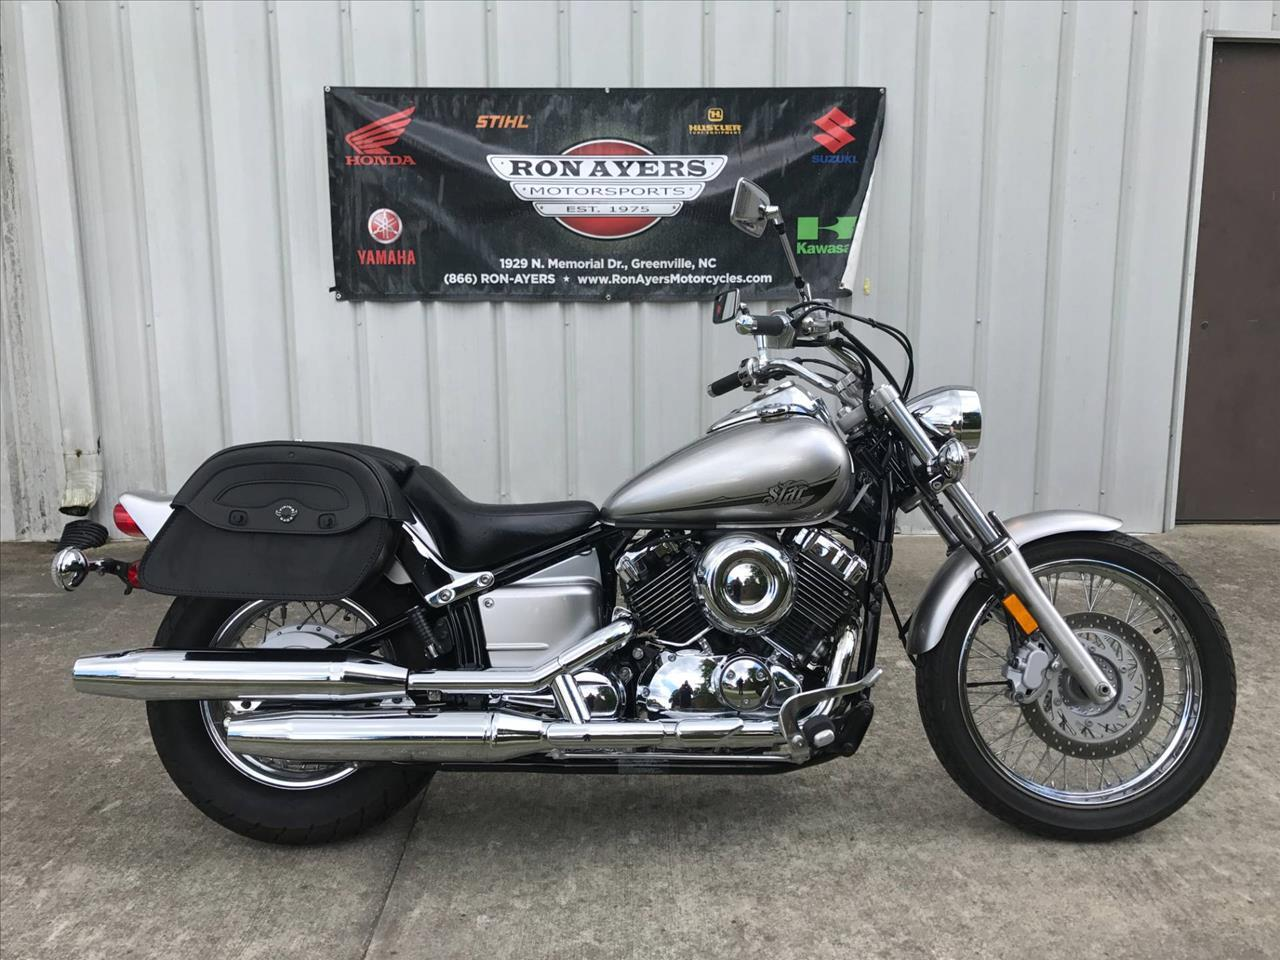 2014 Yamaha V Star 650 Custom for sale at Vehicle Network, LLC - Ron Ayers Motorsports in Greenville NC